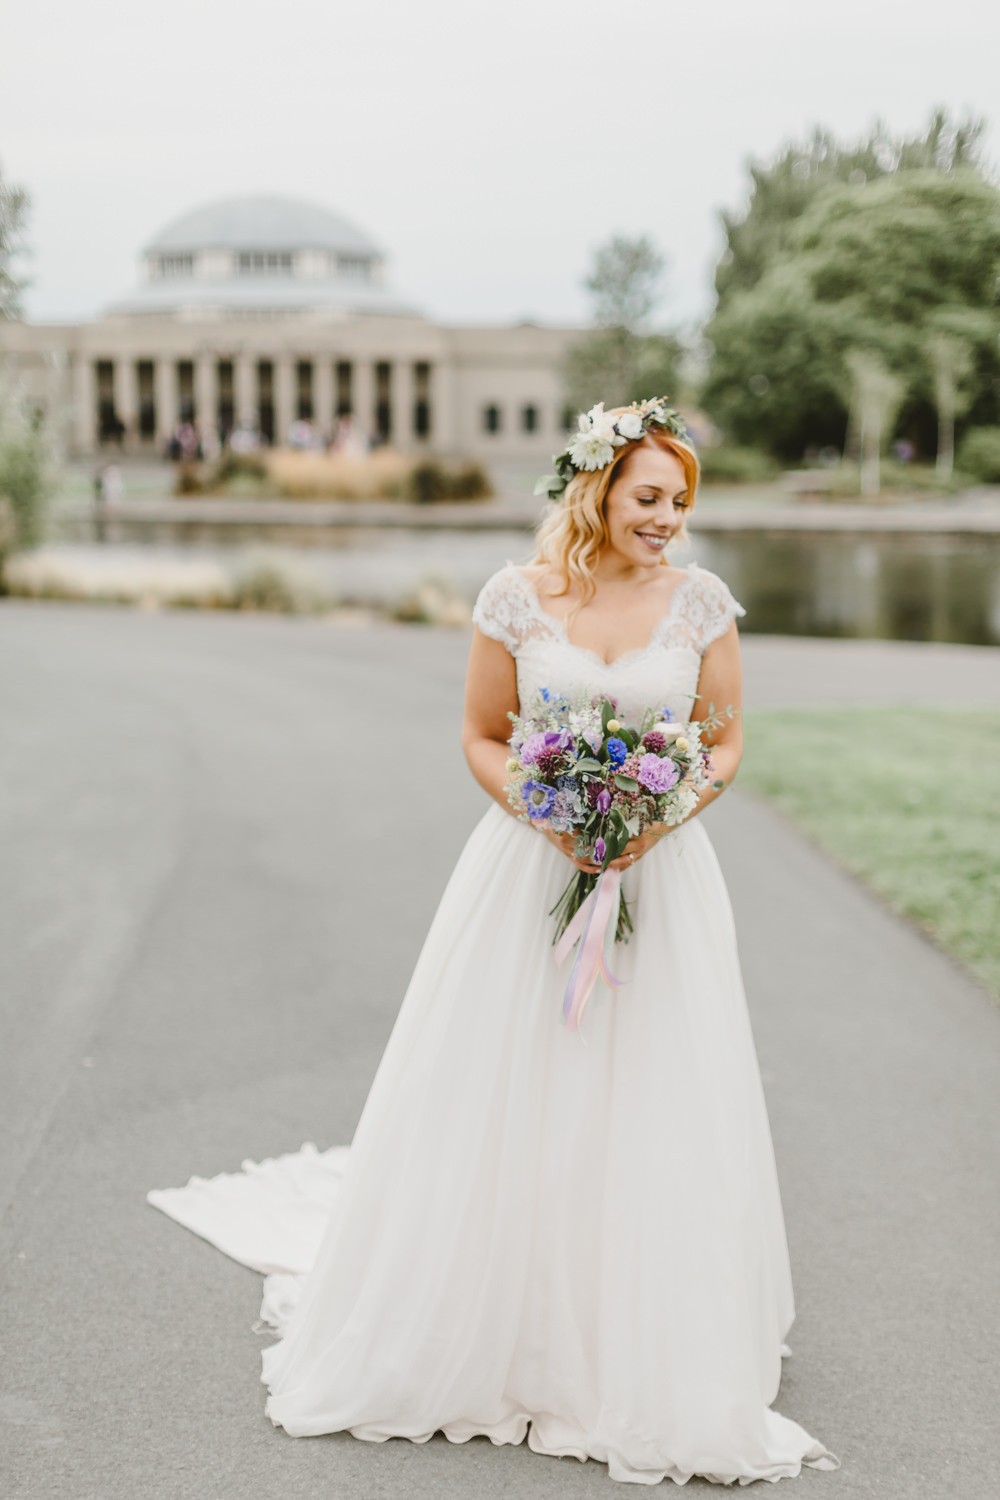 Dress Gown Bride Bridal Naomi Neoh A Line Lace Top Cap Sleeves Wylam Brewery Wedding Amy Lou Photography